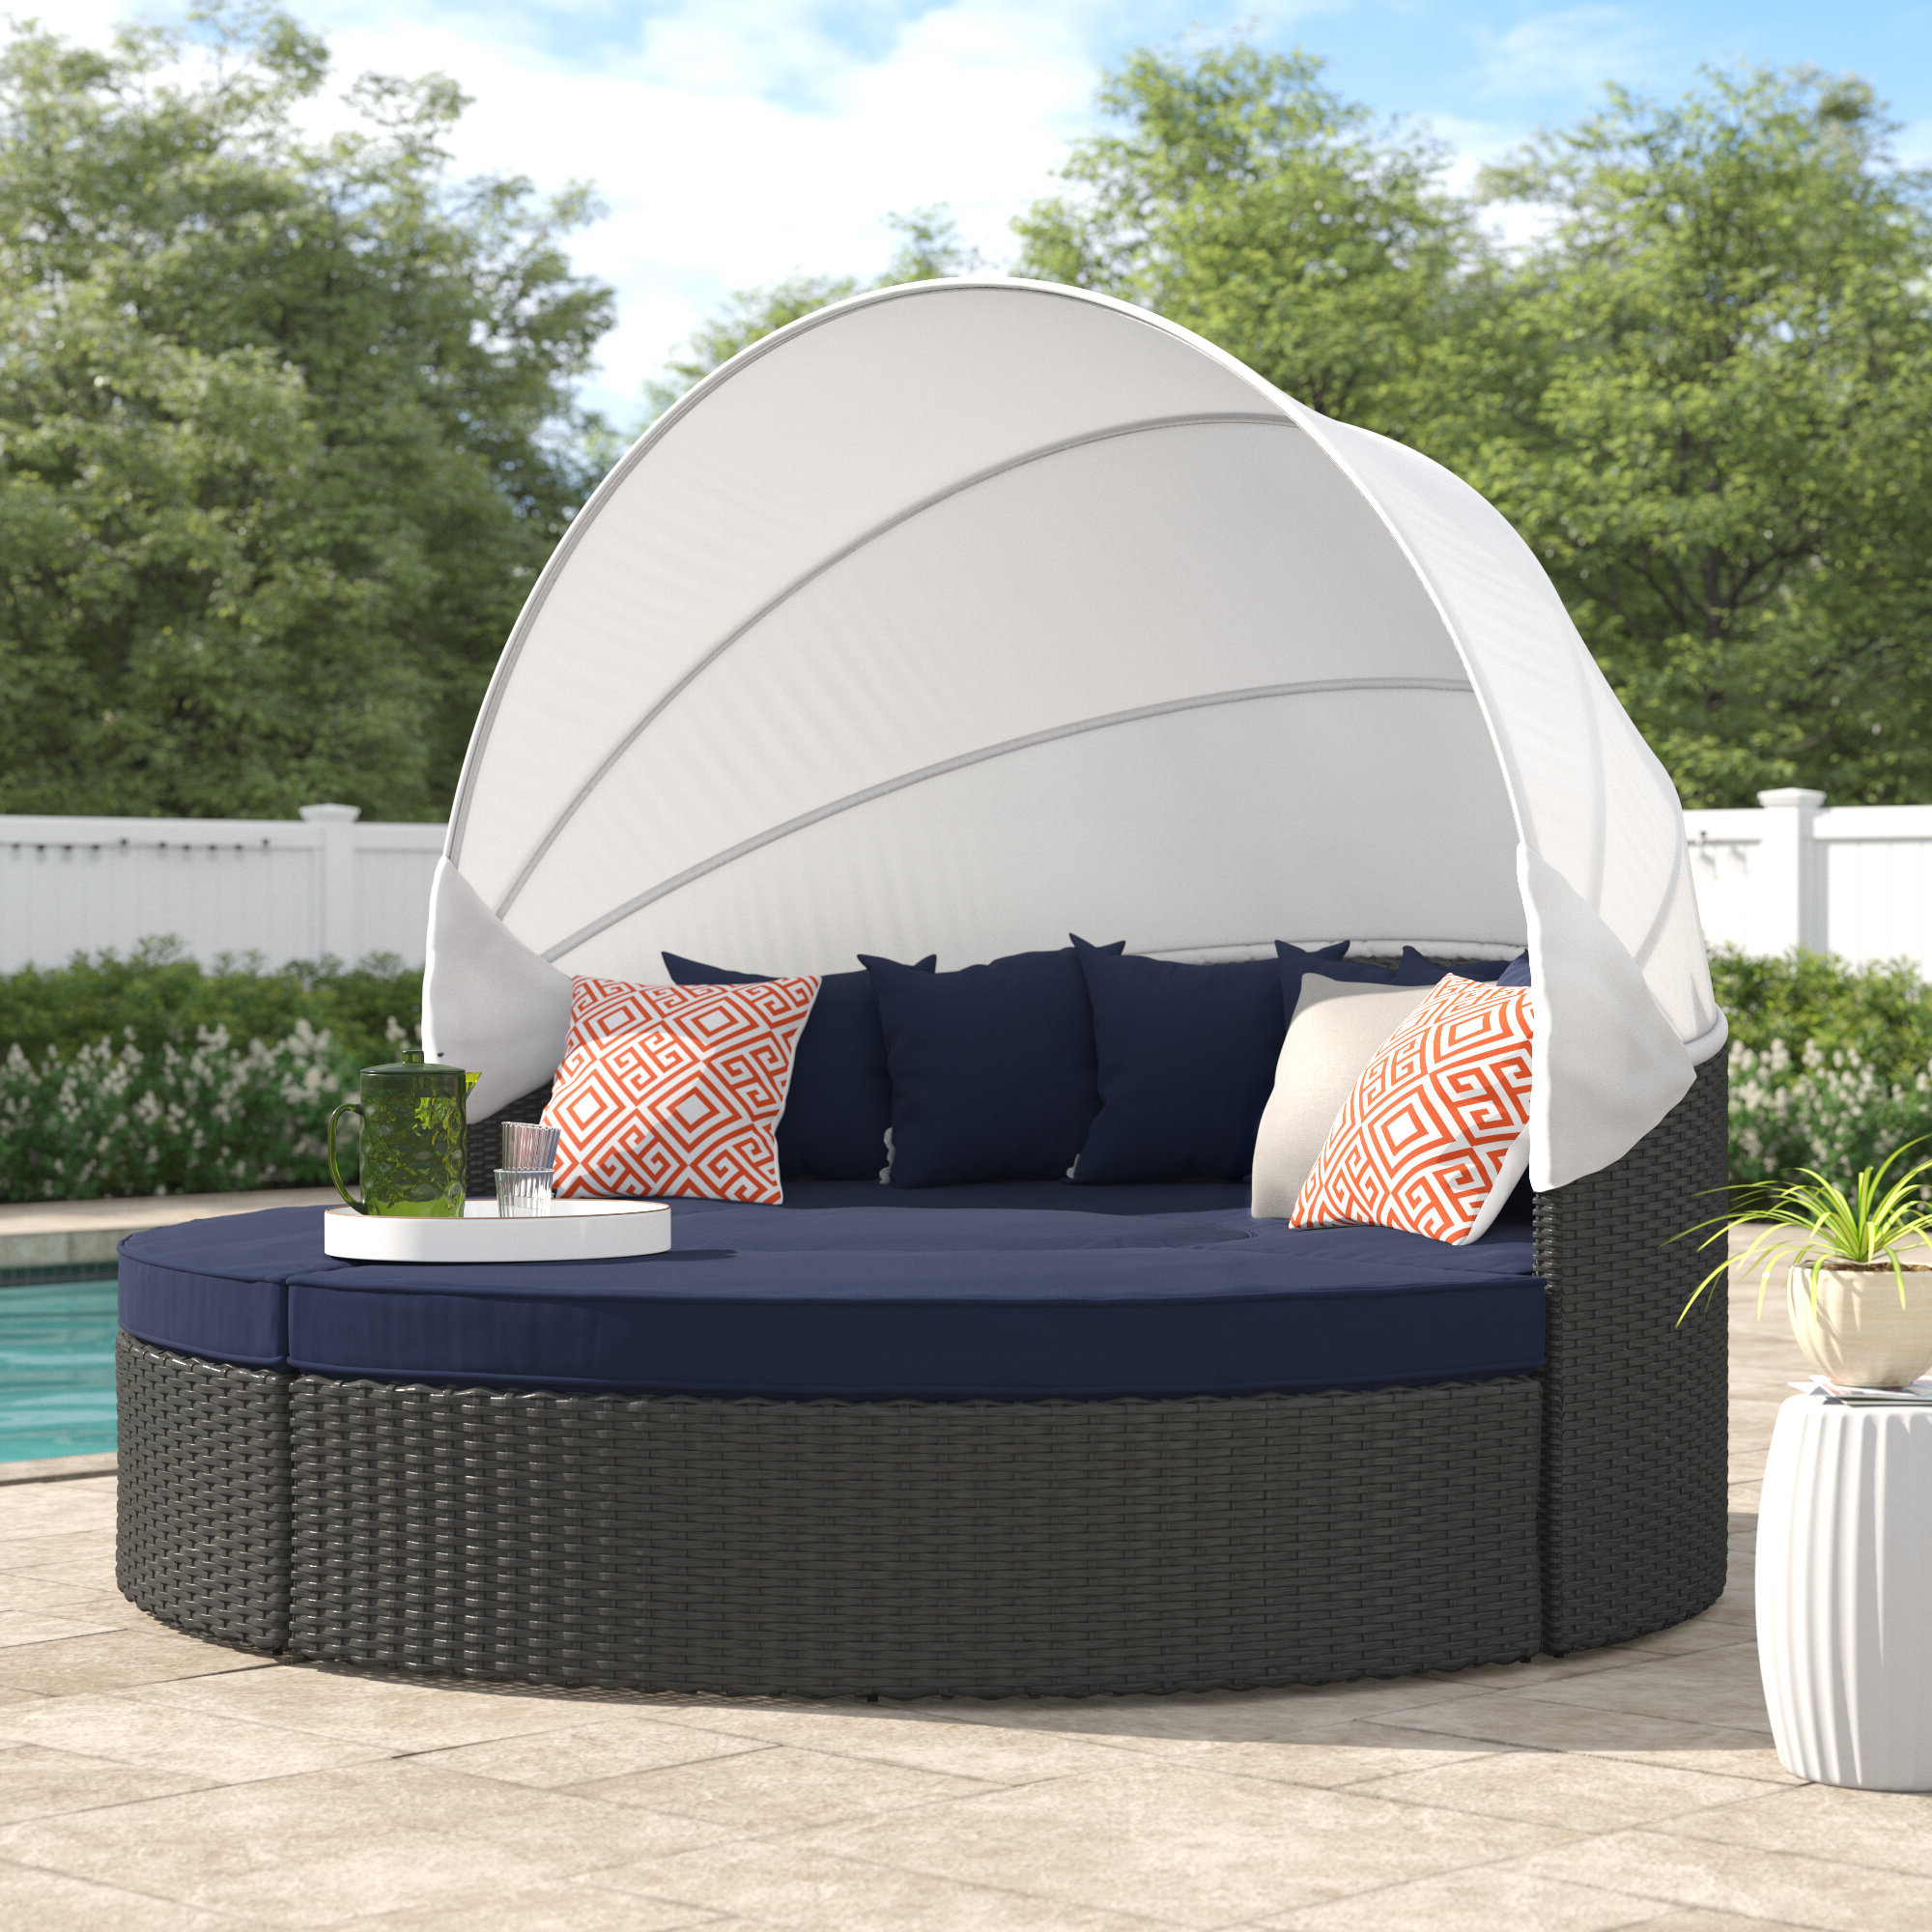 Brentwood Patio Daybeds With Cushions Intended For 2020 Tripp Patio Daybed With Sunbrella Cushions (View 5 of 25)